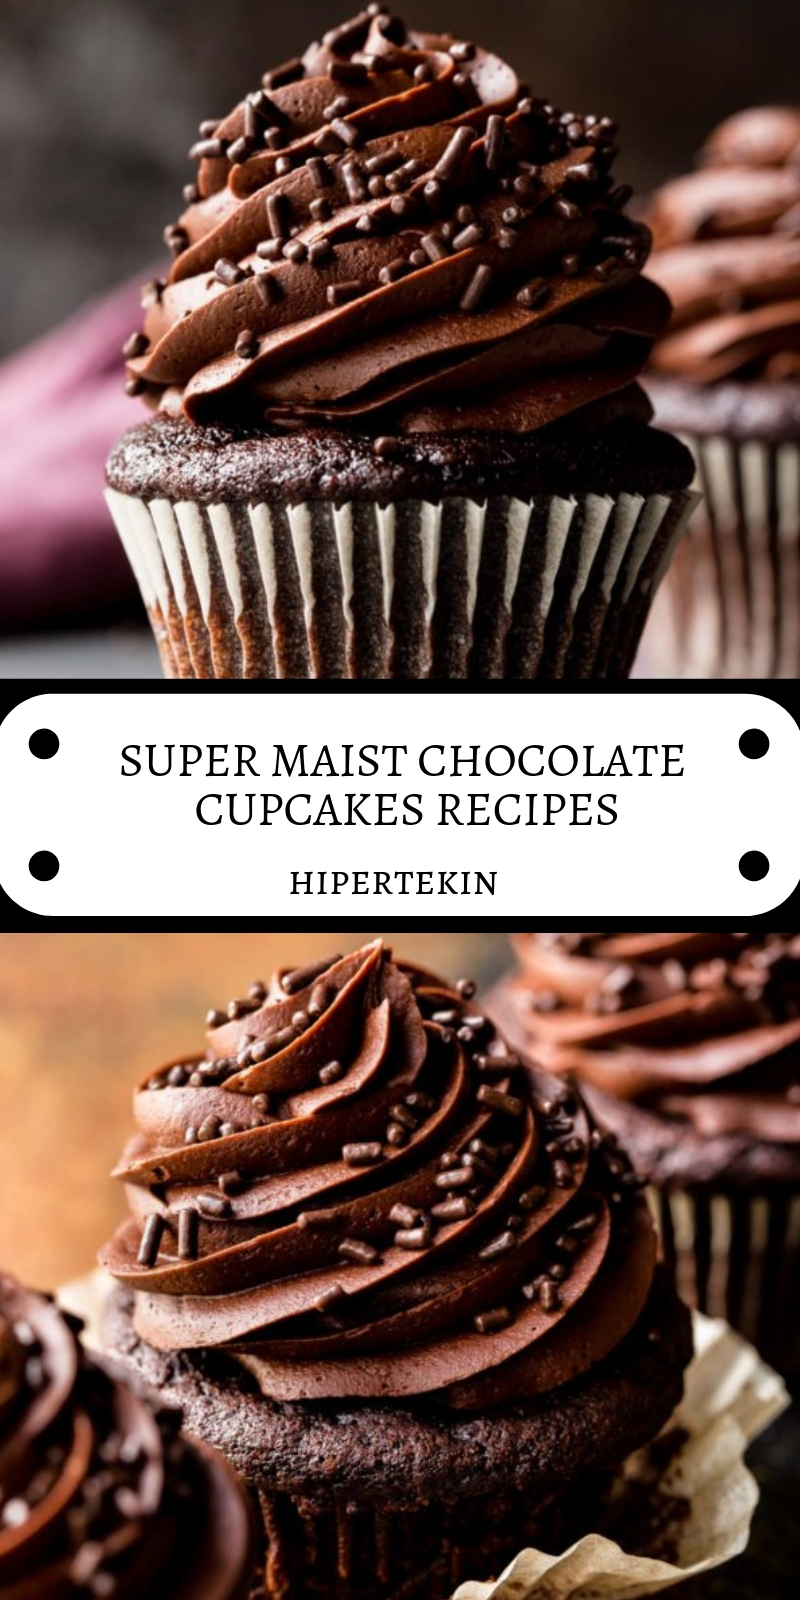 SUPER MAIST CHOCOLATE CUPCAKES RECIPES